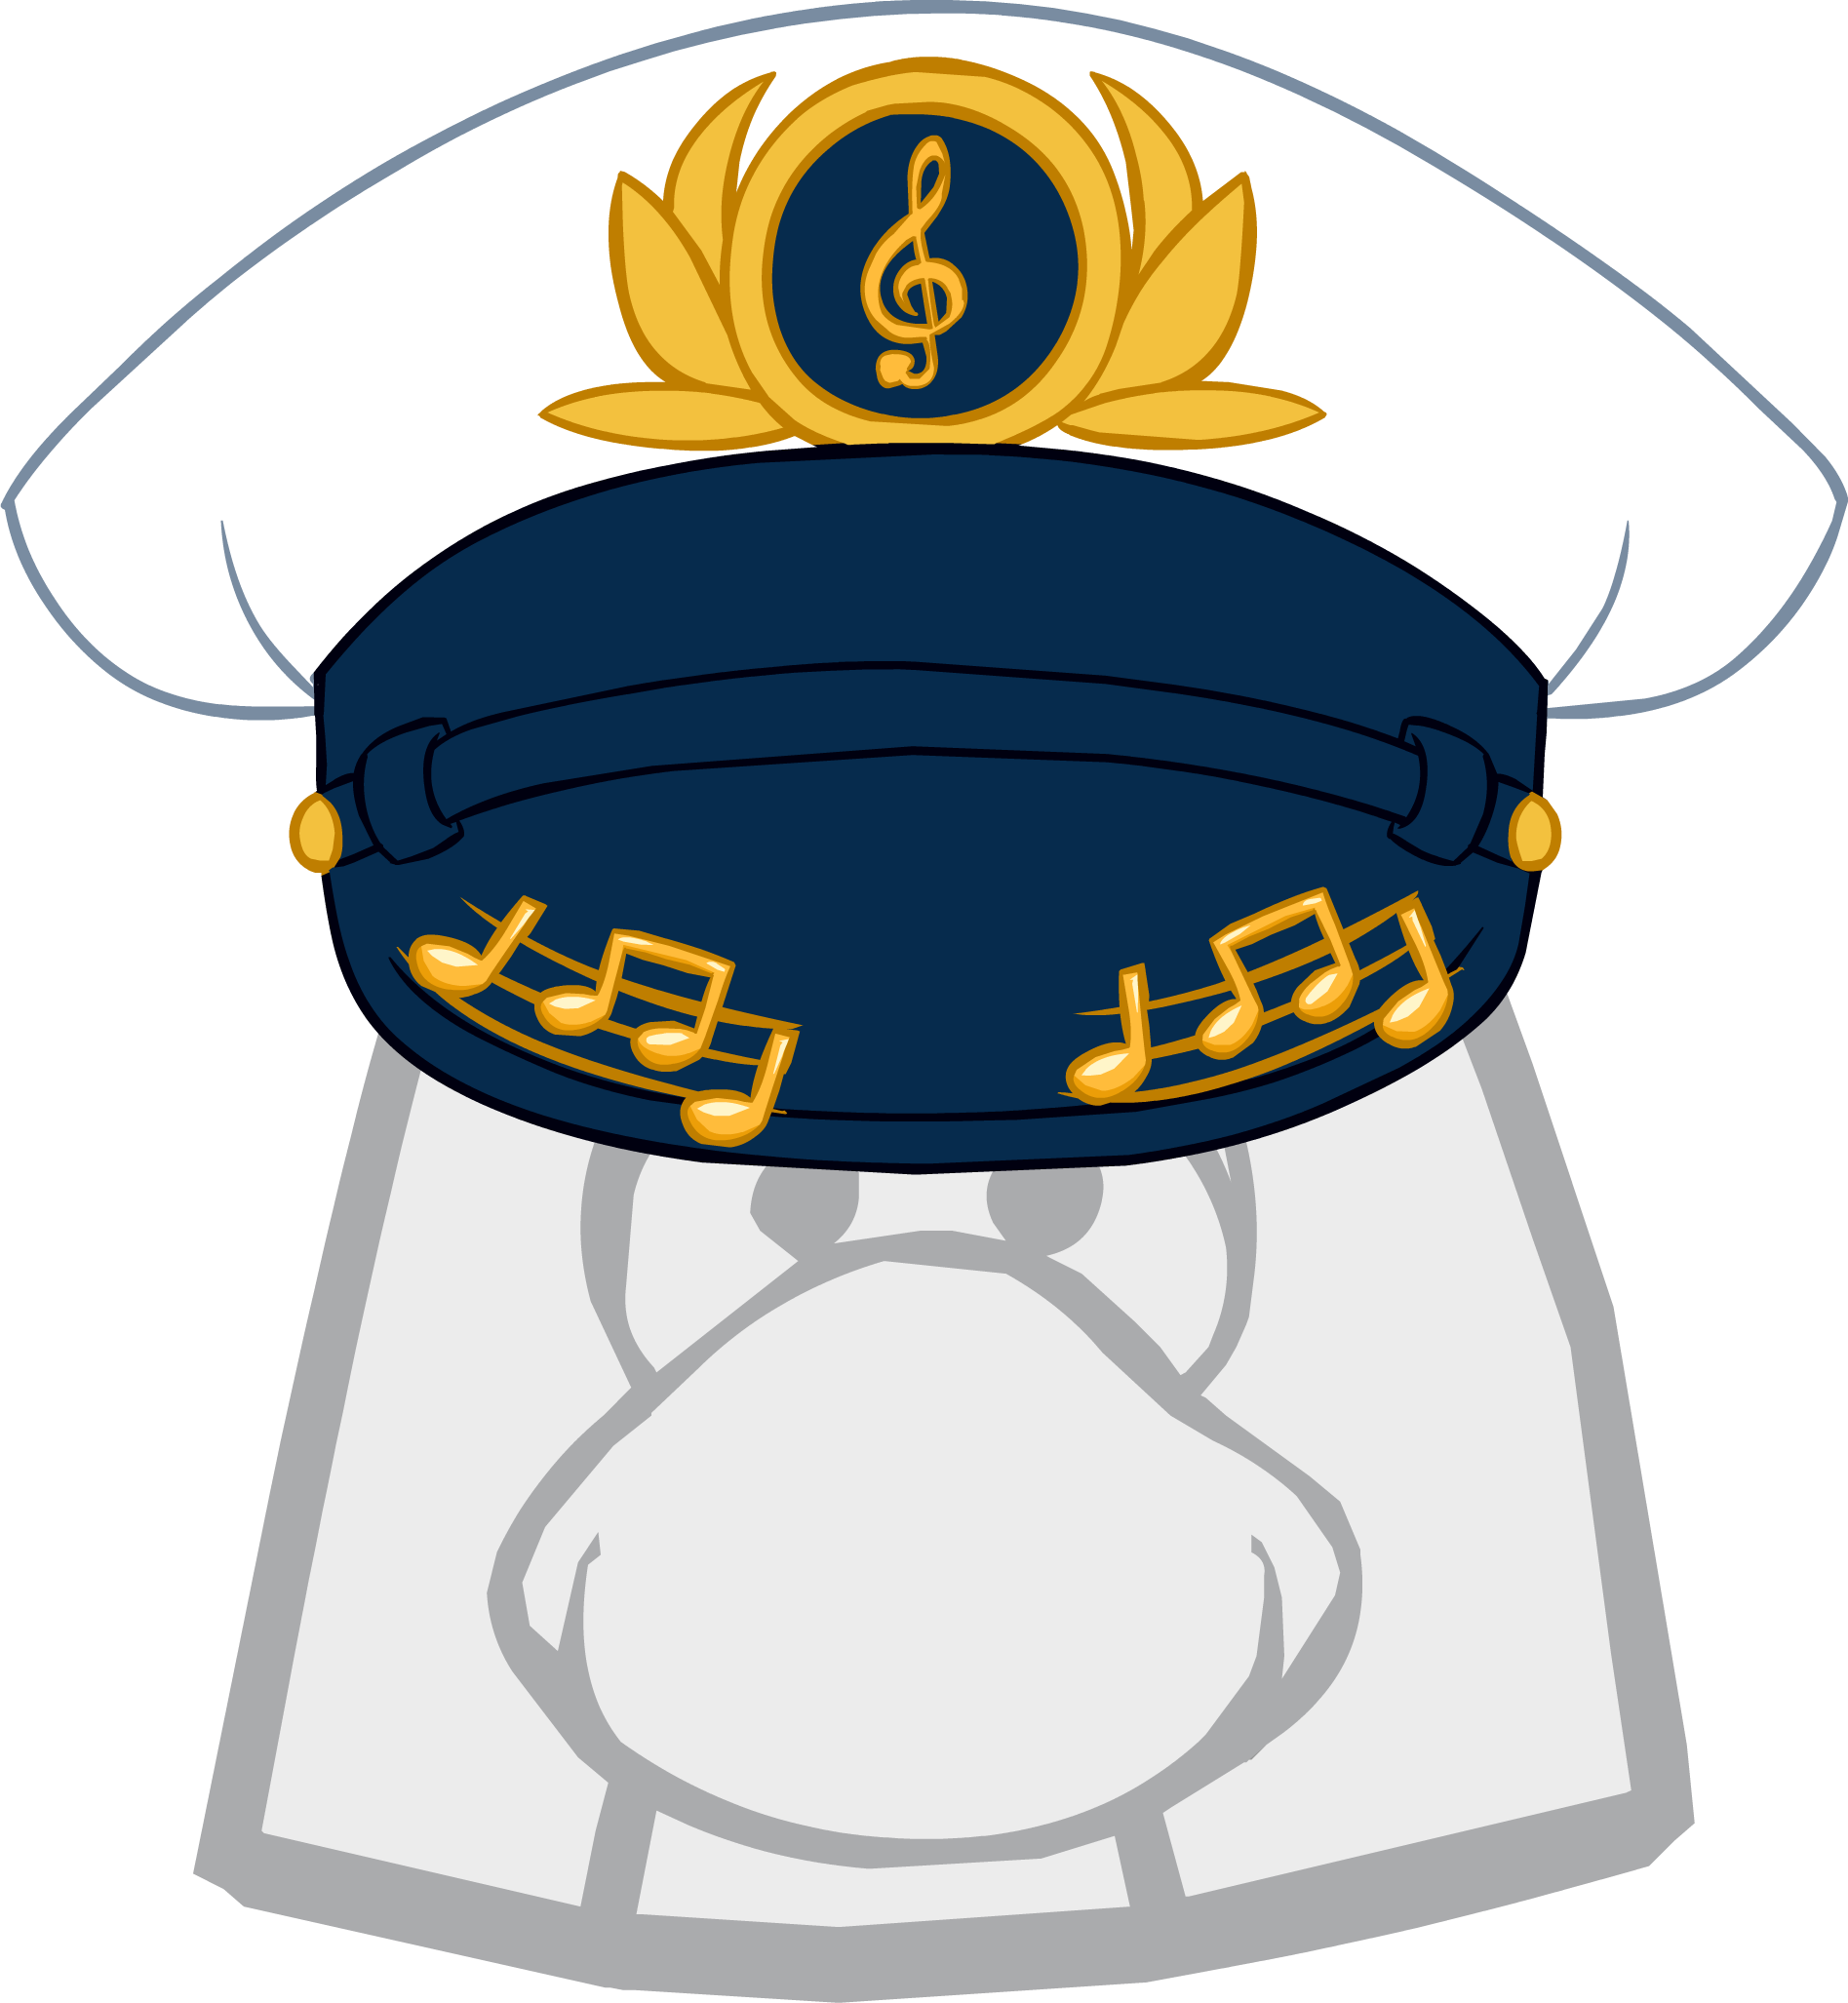 Cruise Captain Hat   Club Penguin Wiki   FANDOM powered by ...  Cruise Captain ...